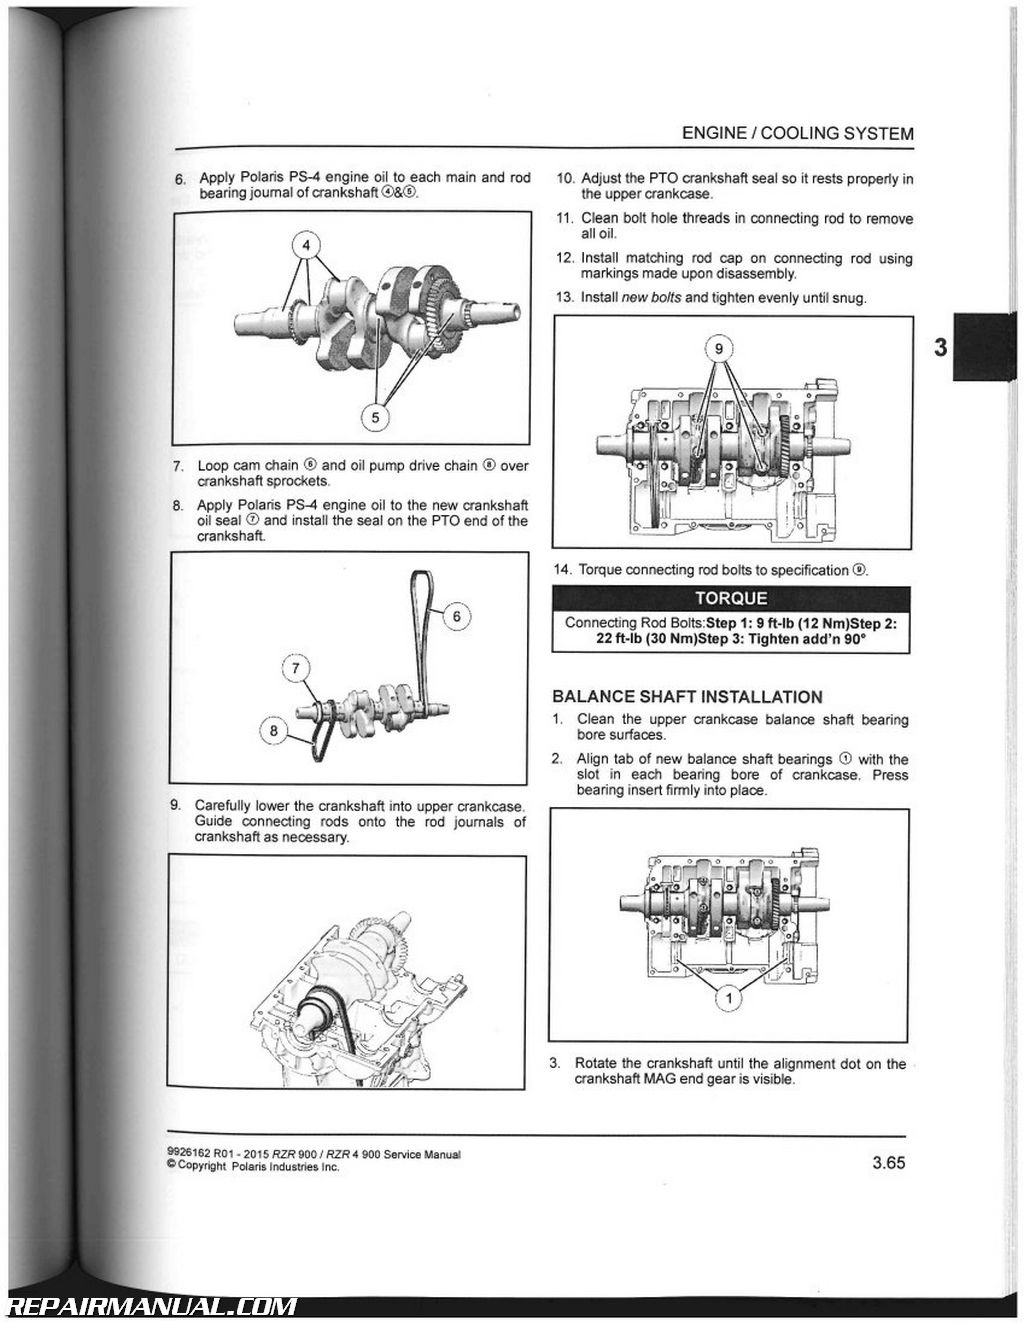 Rzr 4 Wiring Diagram Guide And Troubleshooting Of Polaris Ranger 800 2015 900 Side By Service Manual Rh Repairmanual Com Xp